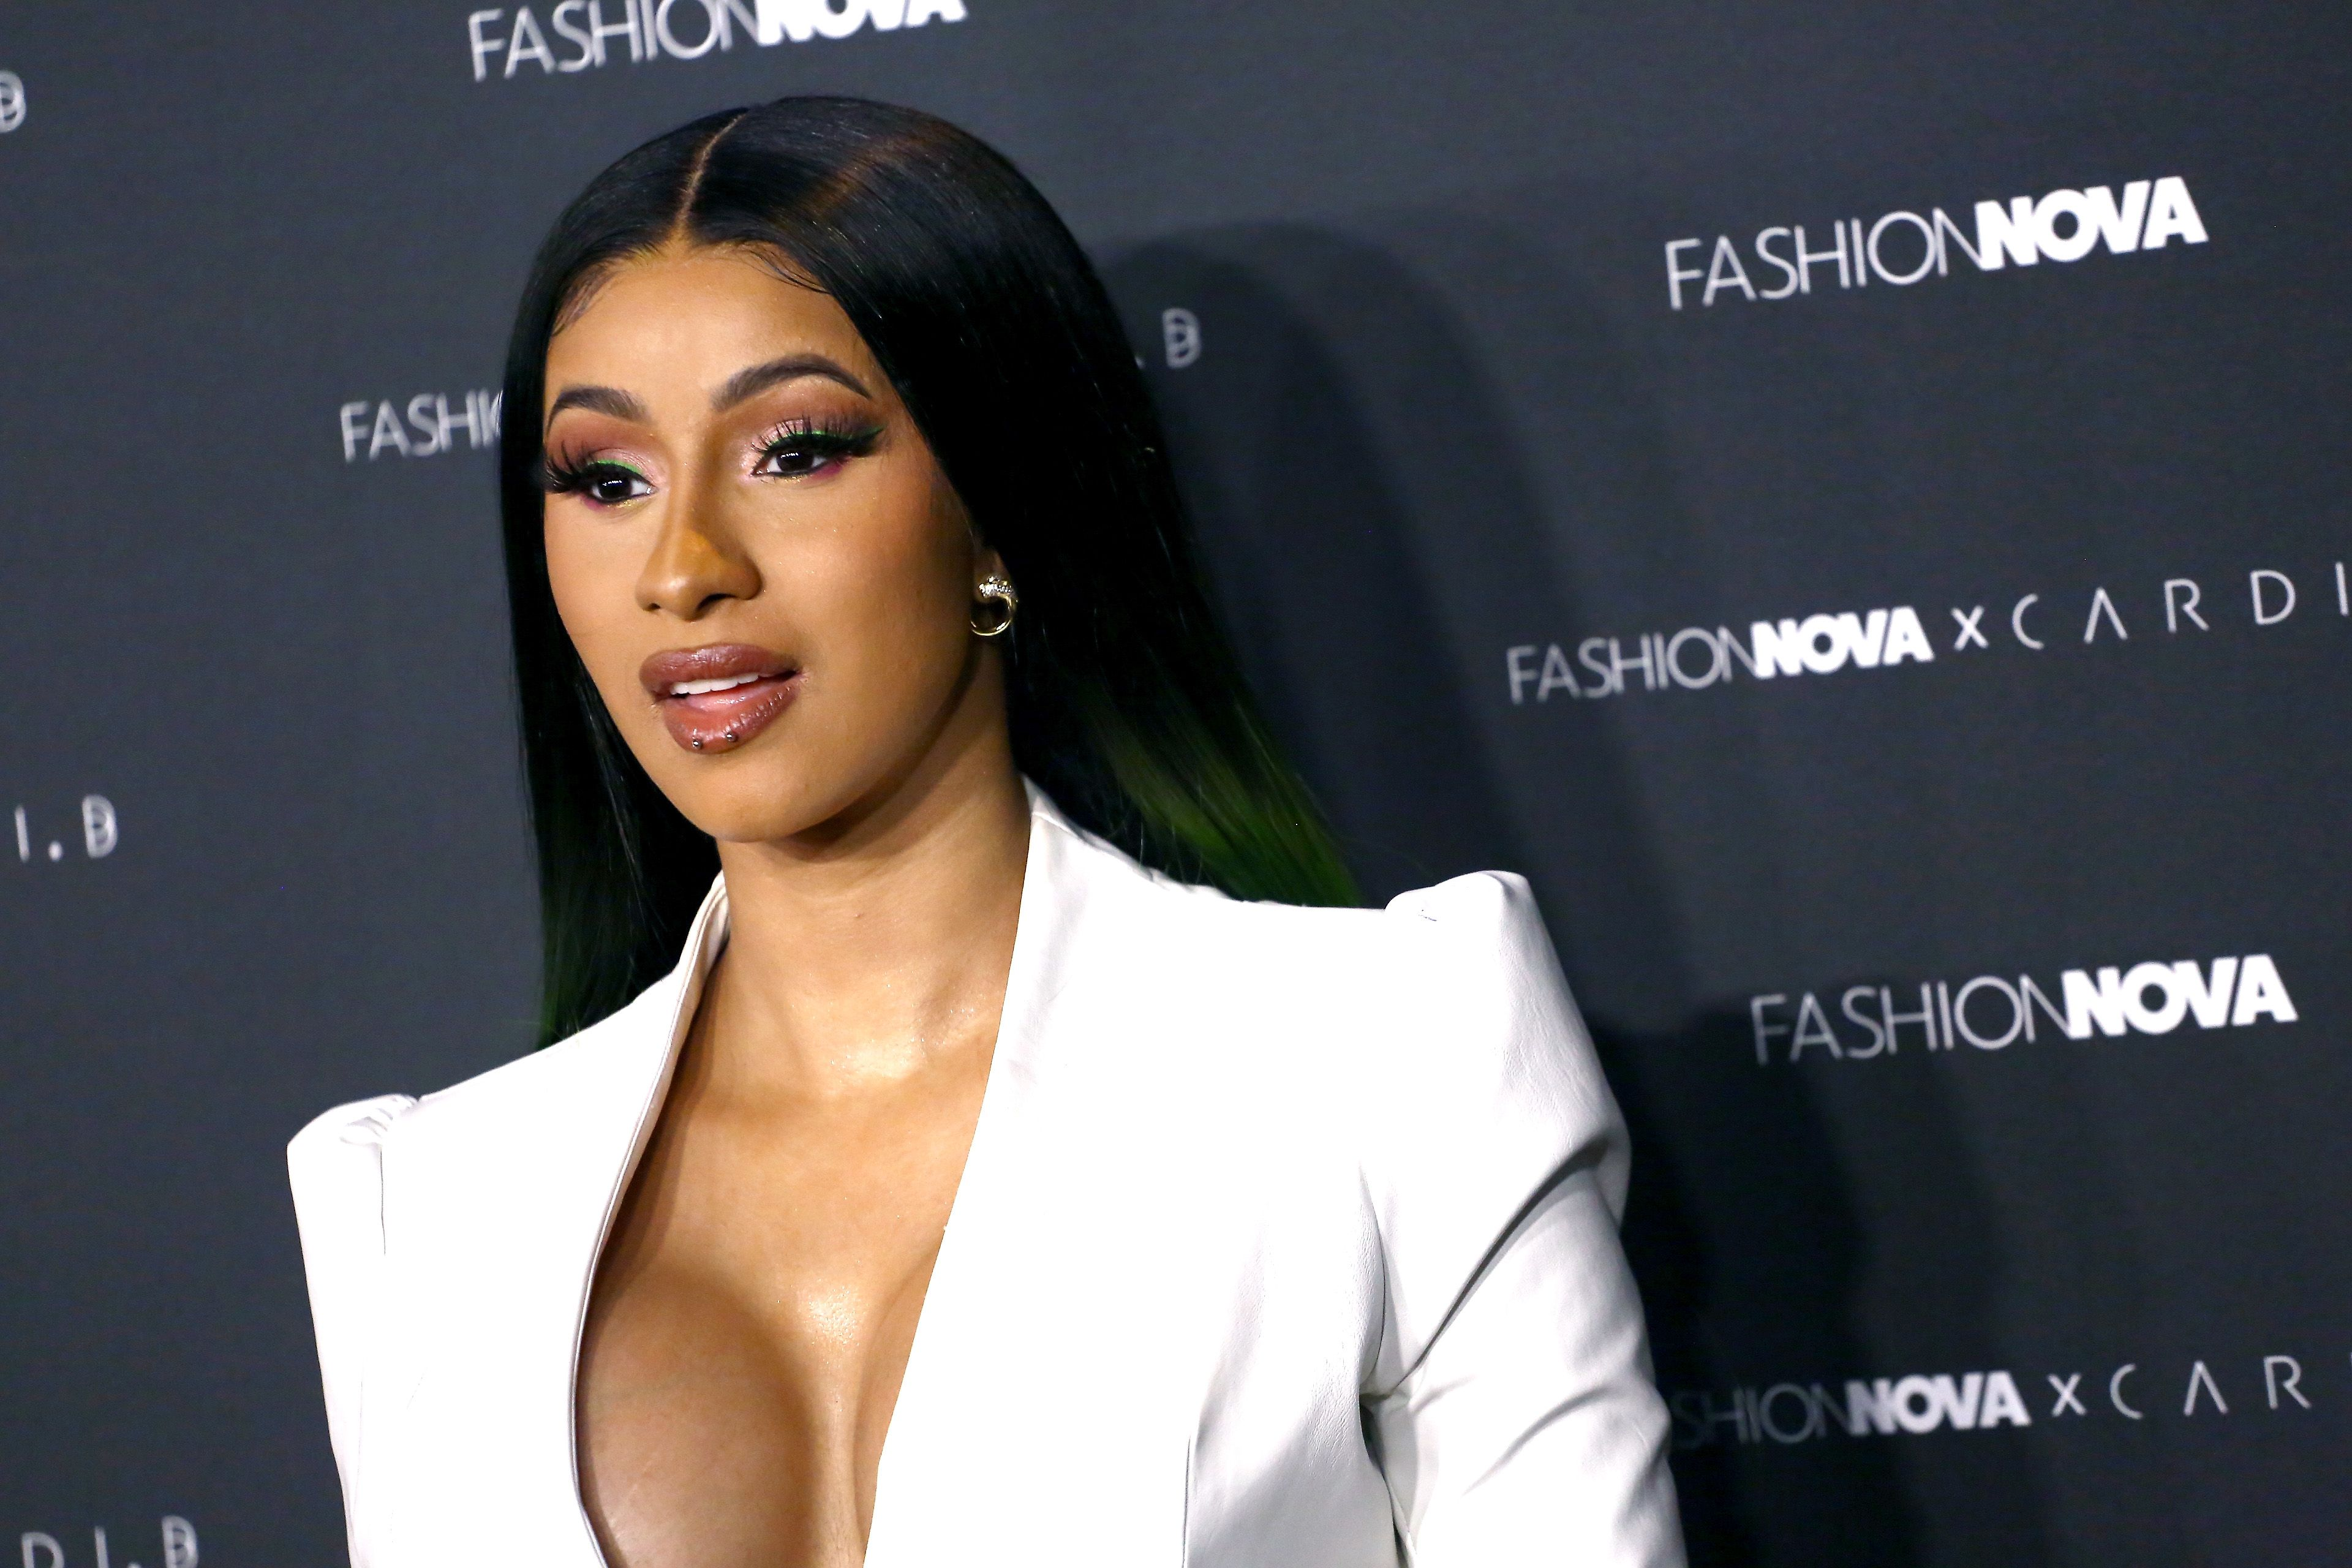 Cardi B at an event